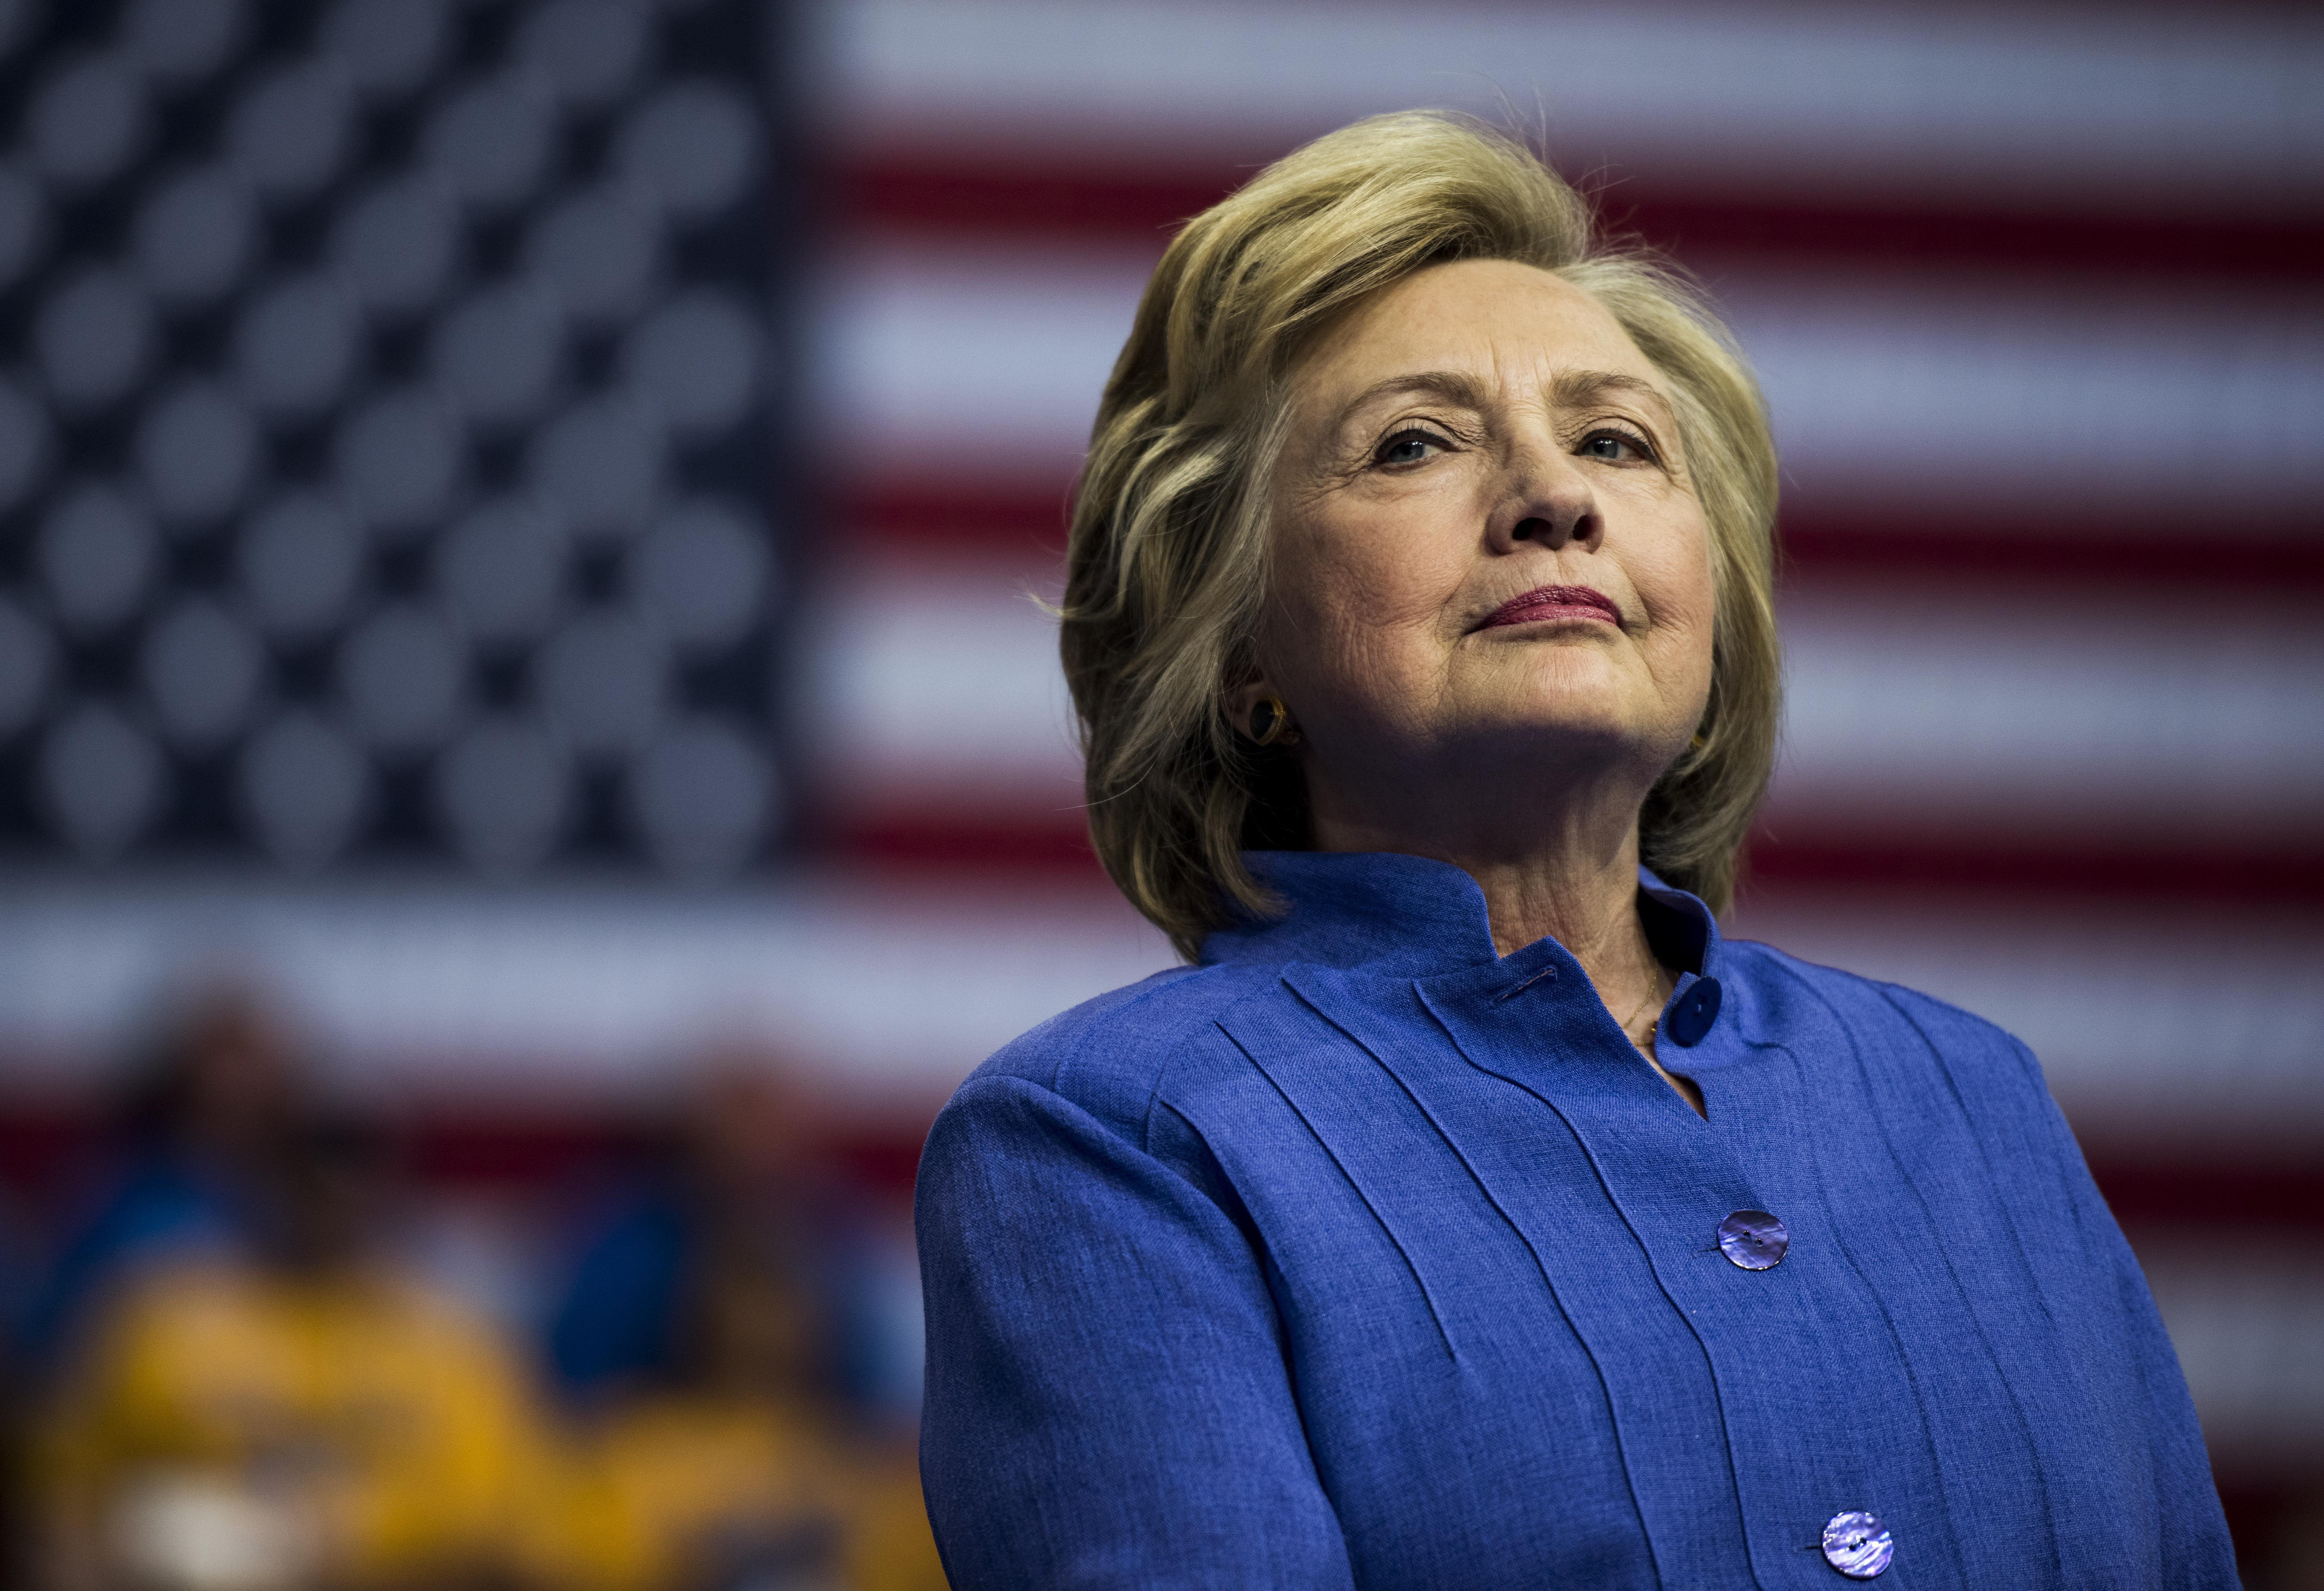 Democratic presidential nominee Hillary Clinton has outraised Donald Trump in Western New York. (Washington Post)